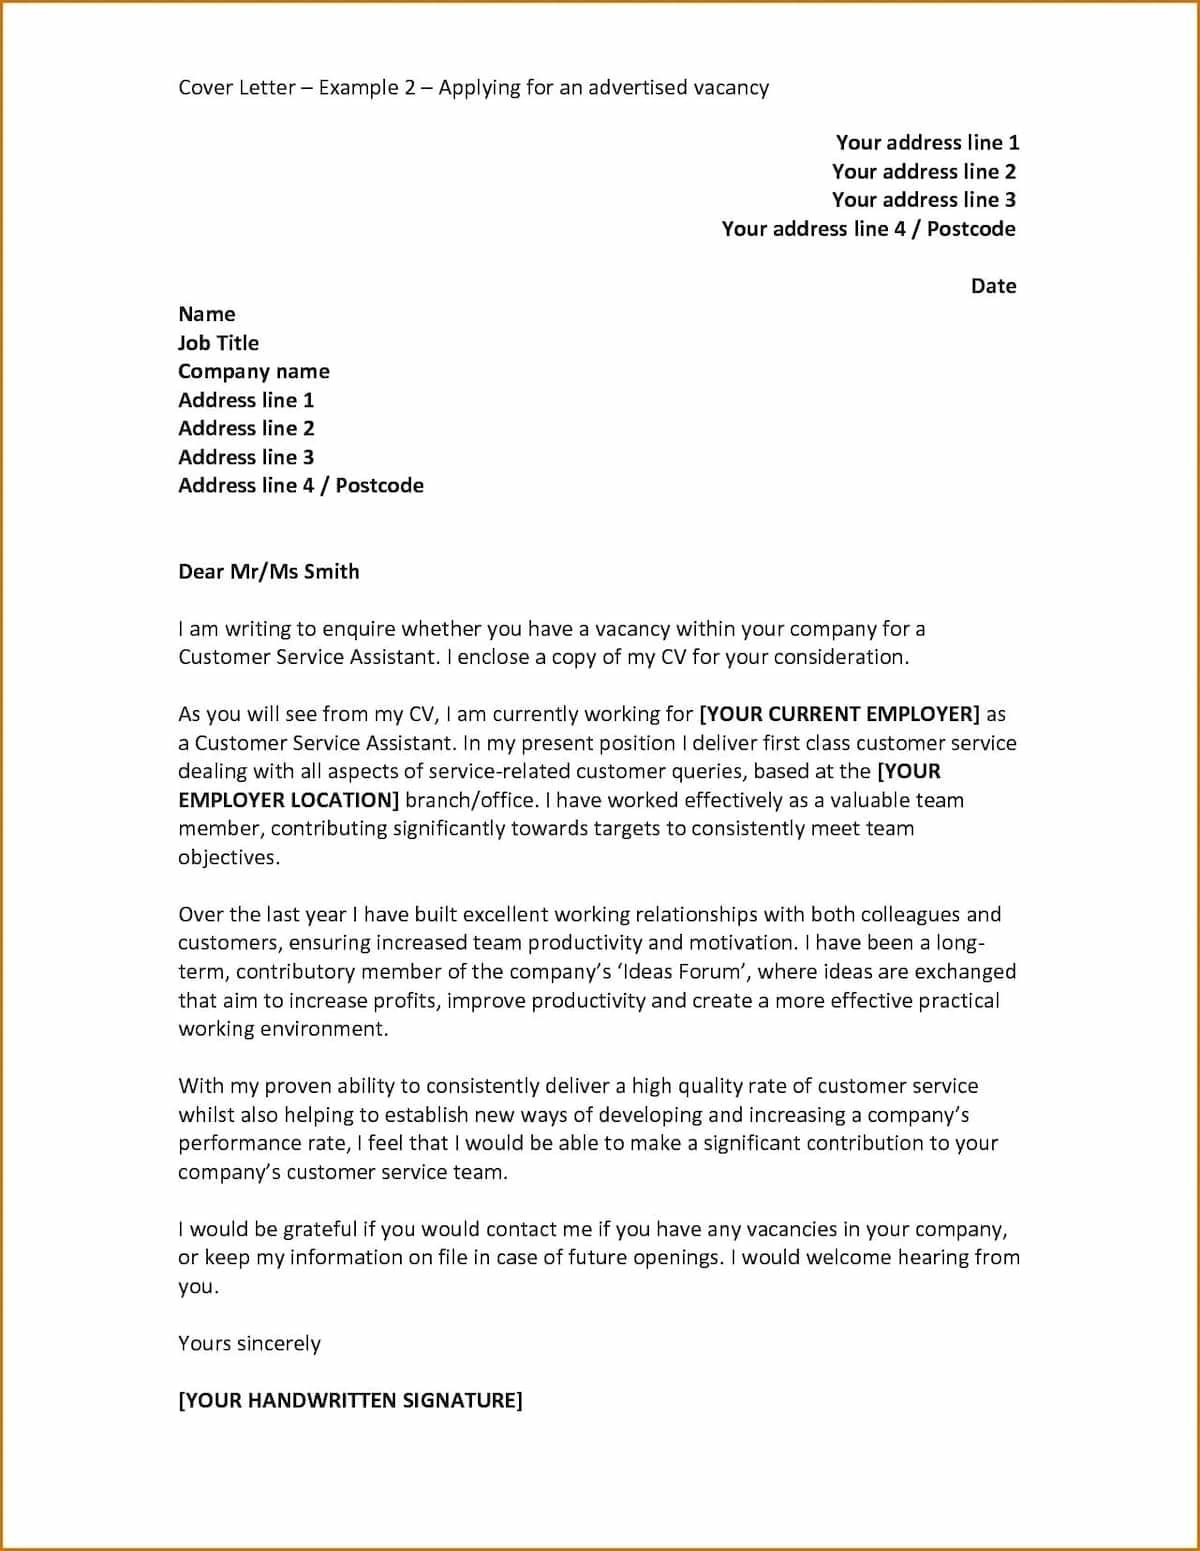 38 Excellent Cover Letter For Employment with Pictures